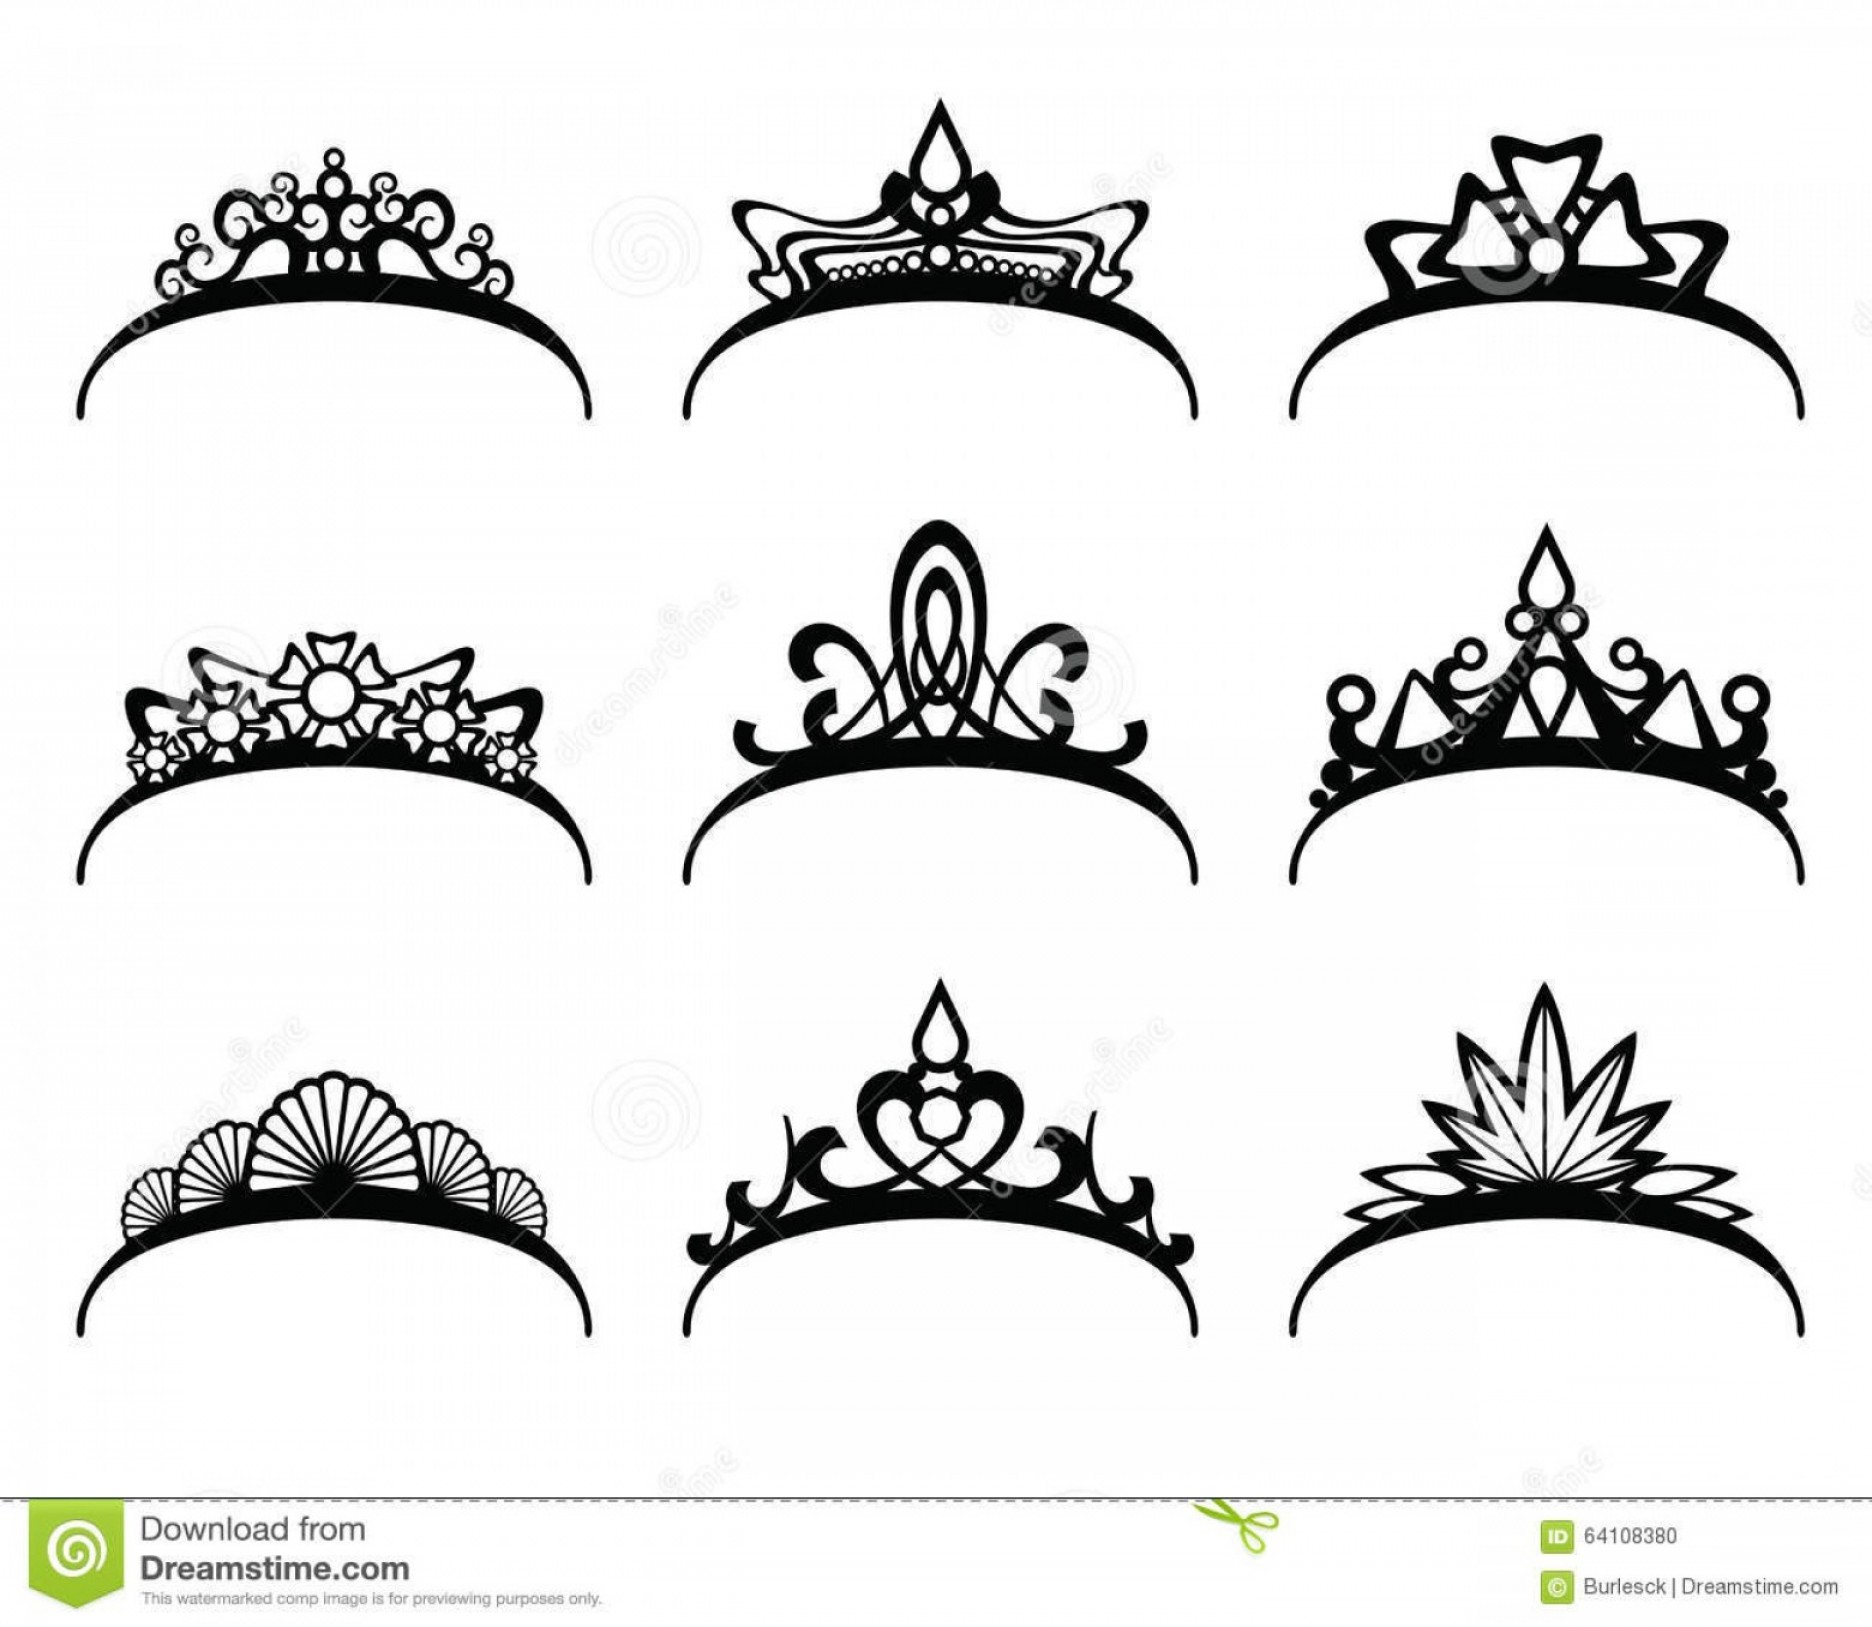 Pageant Tiaras Vector: Stock Illustration Vector Tiaras Set Crown Royal Queen Princess Symbol Royalty Illustration Image